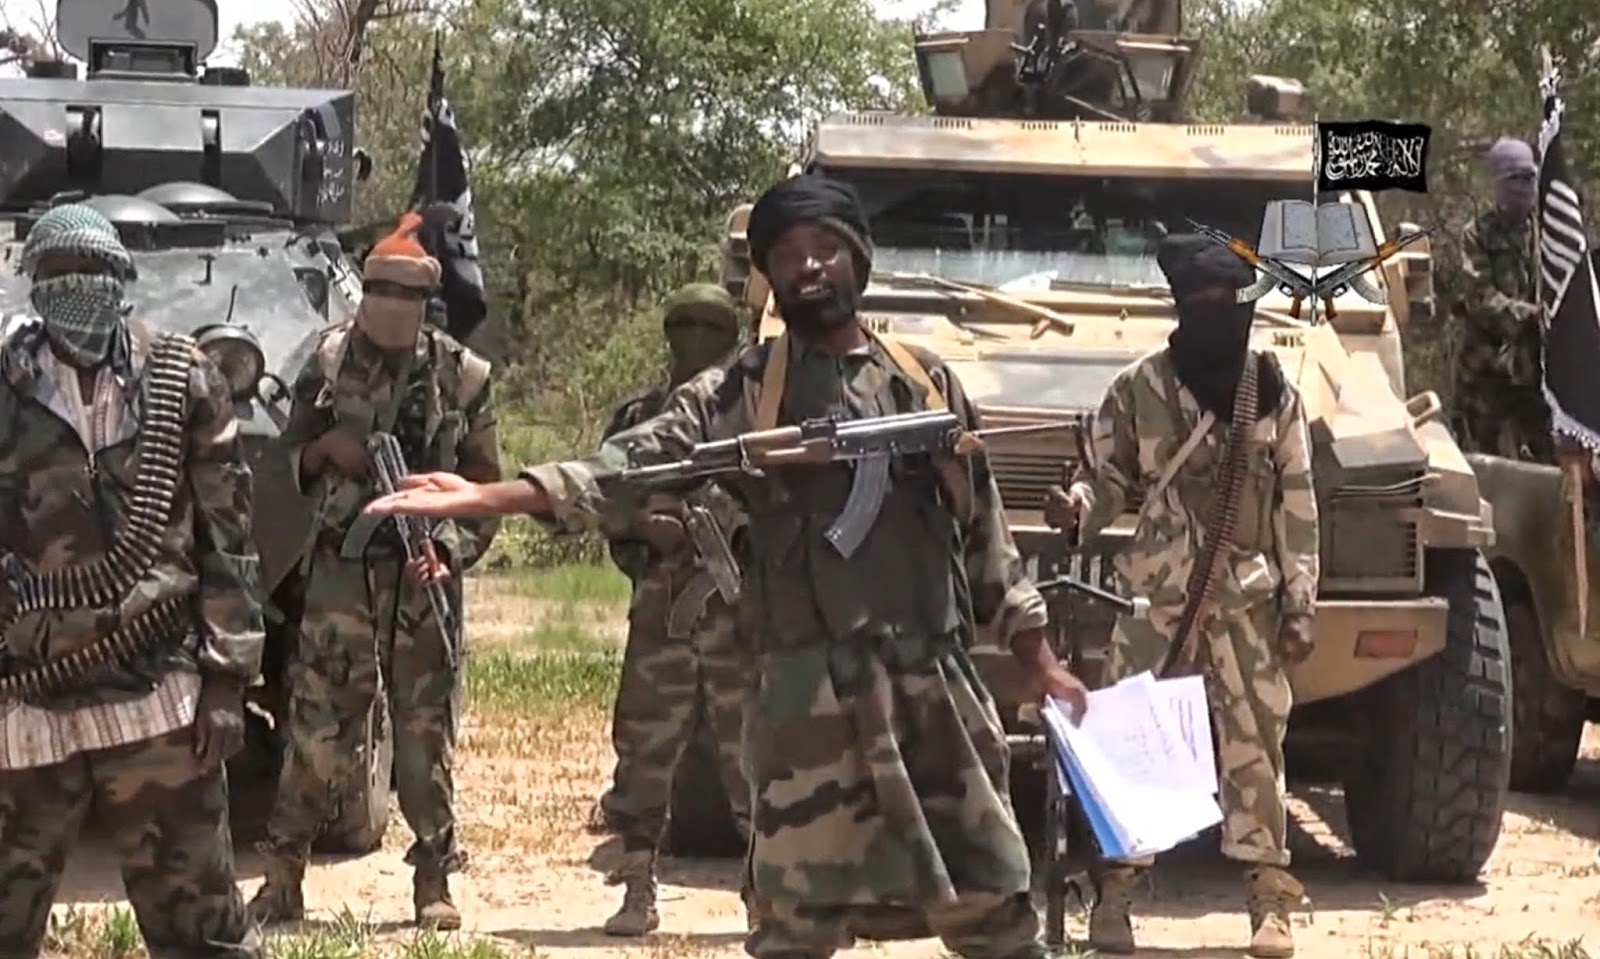 Boko Haram Insurgency Fights On With At Least 4,000 'Hardcore' Militants